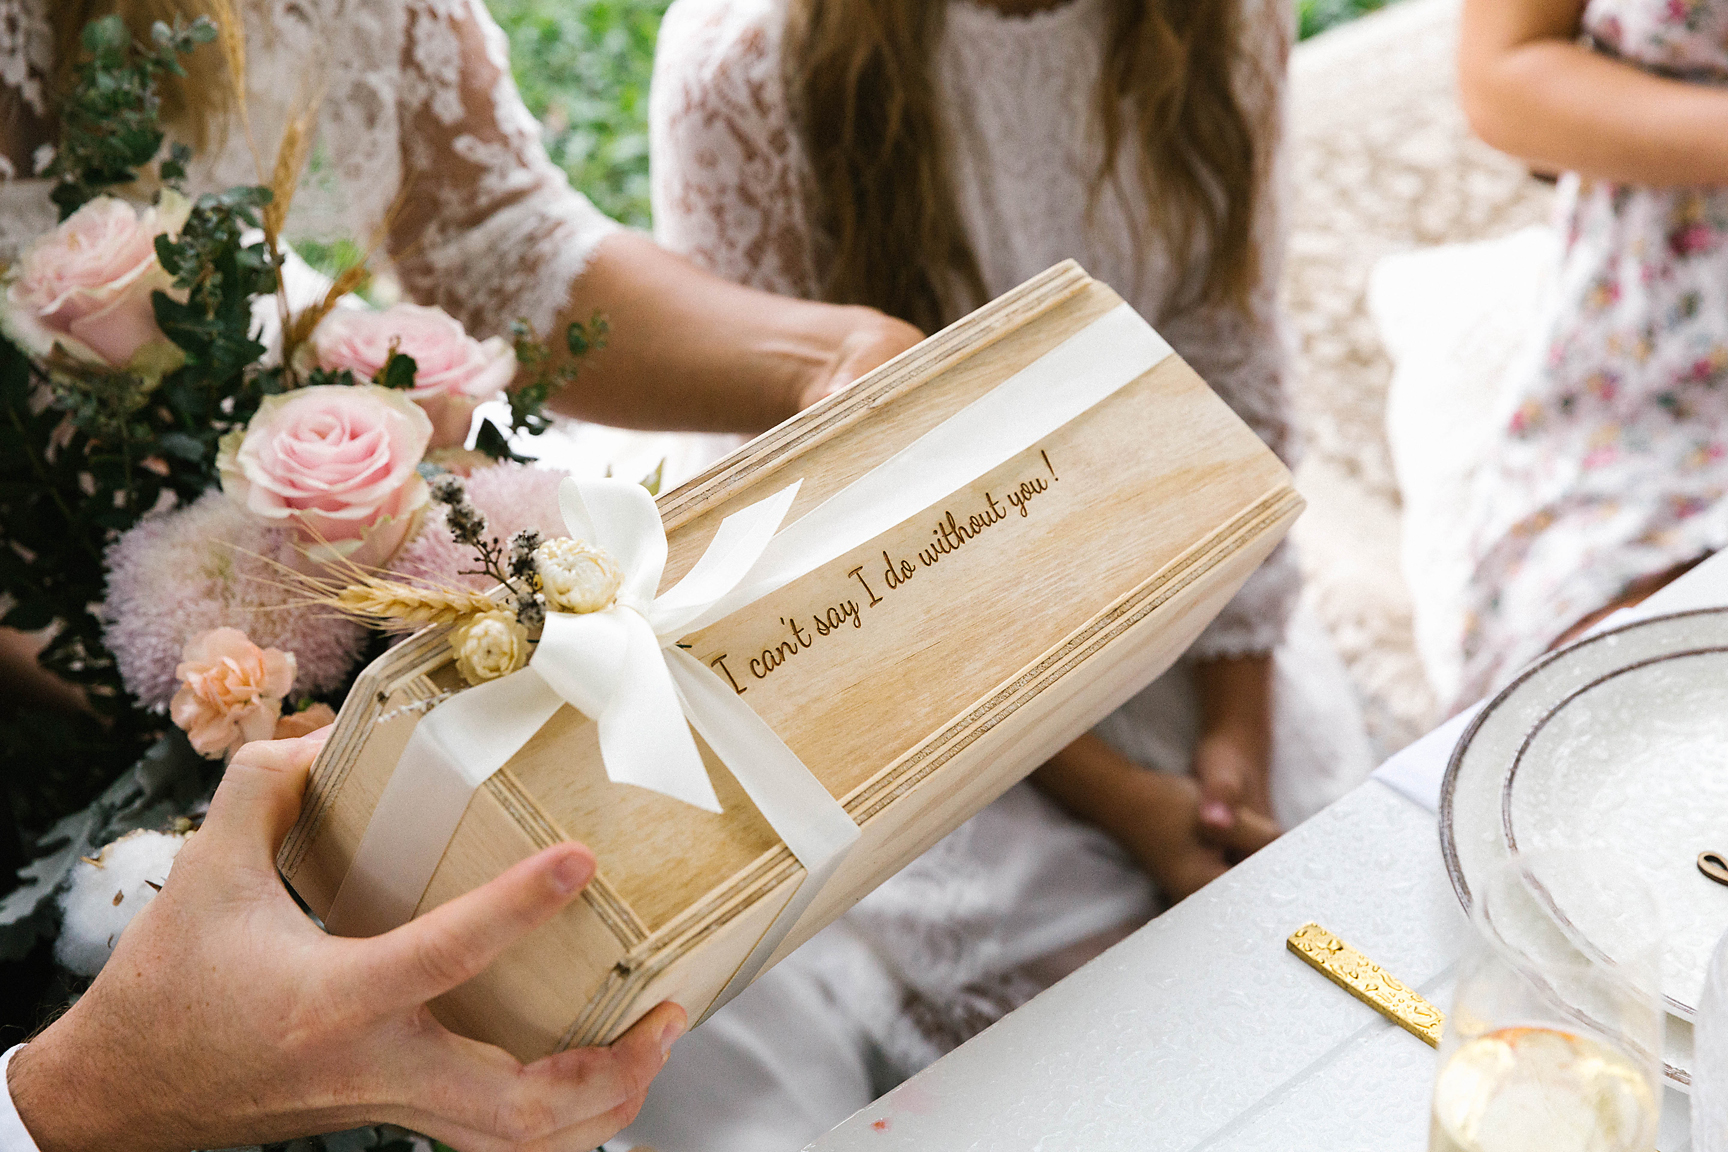 Gift box by The Bridal Box Co. Photography by Poppy & Sage Photography.